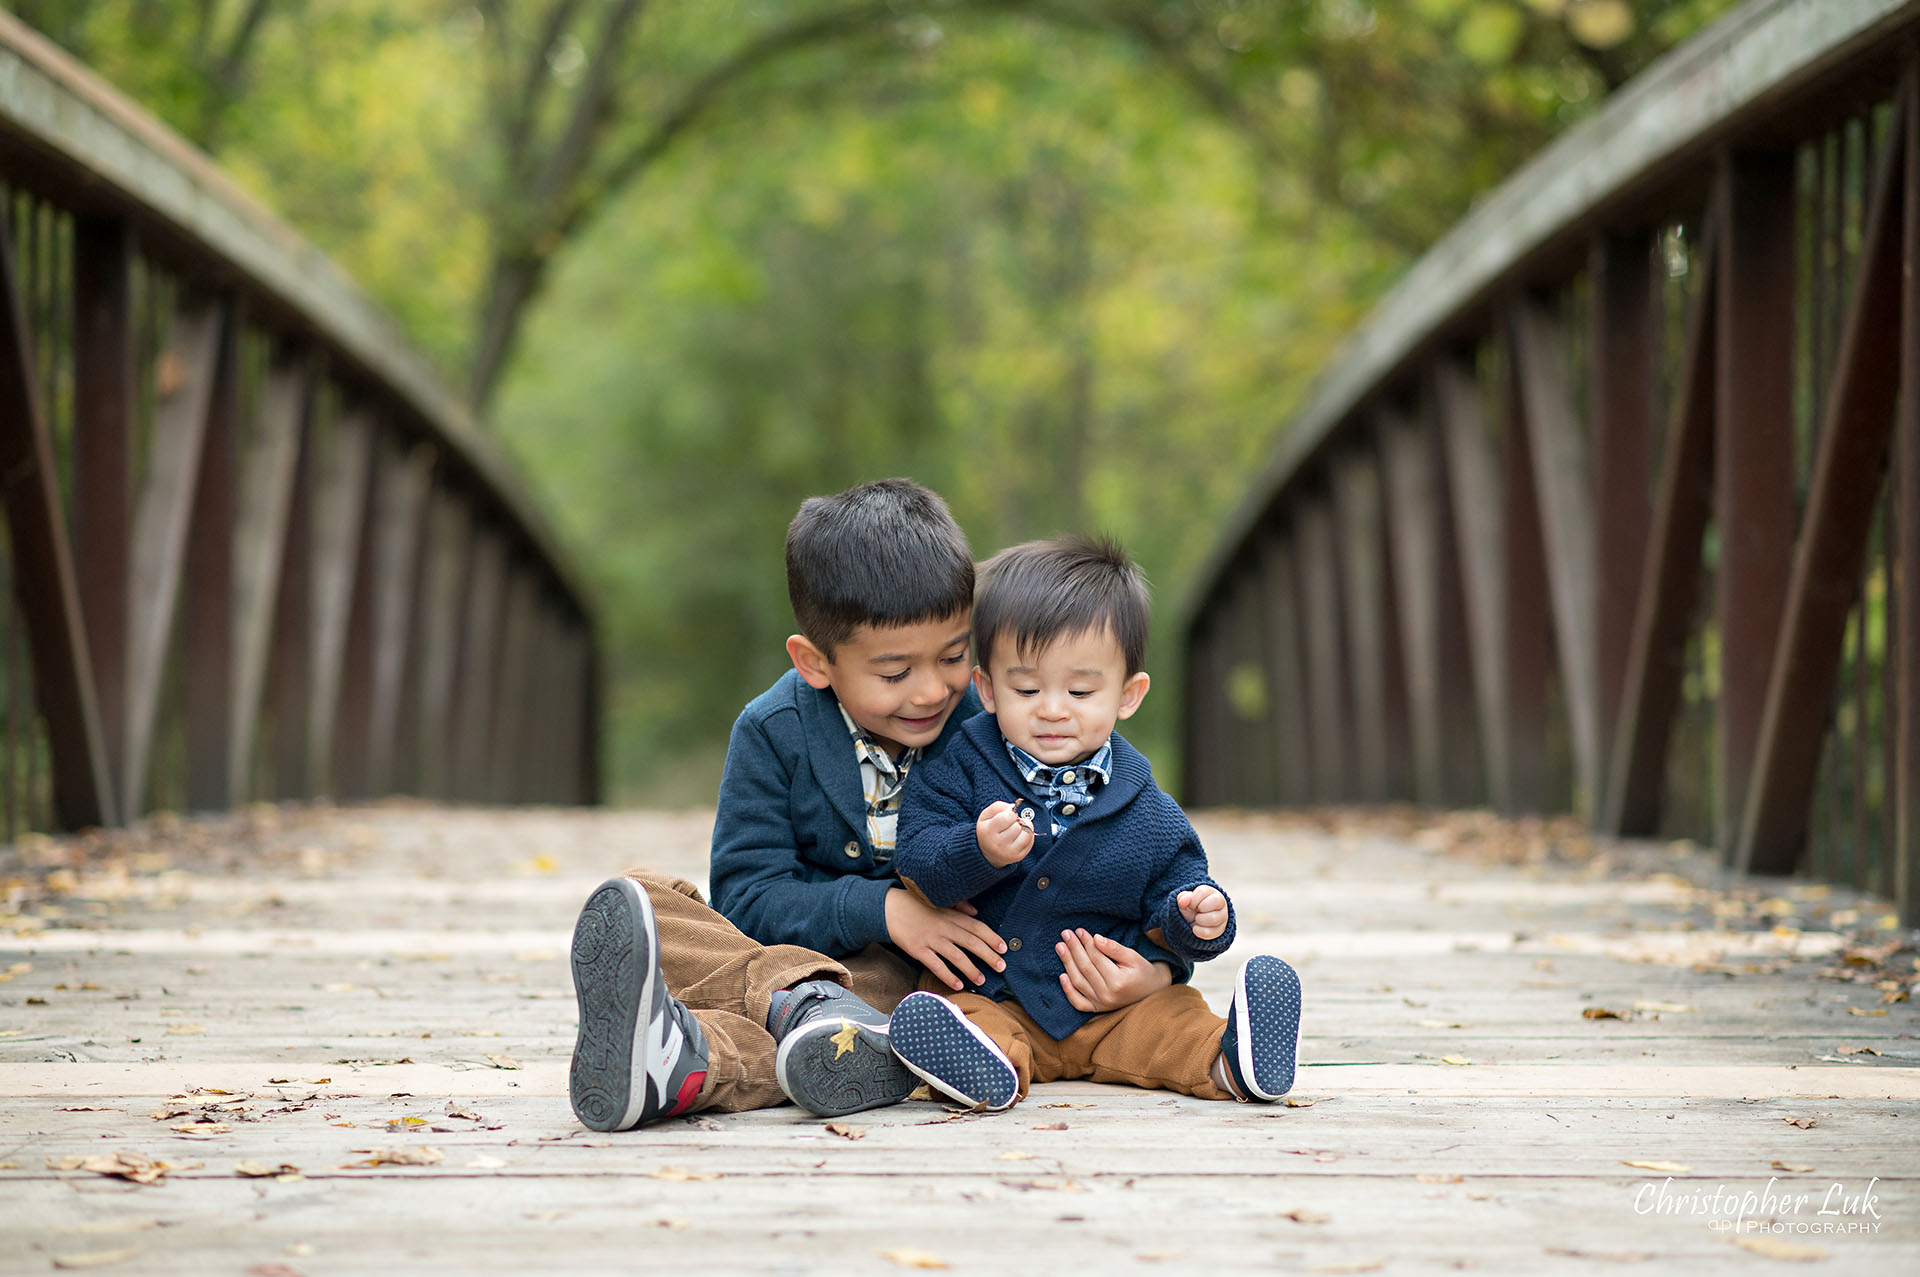 Christopher Luk Family Photographer Toronto Markham Unionville Autumn Fall Leaves Natural Candid Photojournalistic Sons Brothers Boys Hug Sitting Playing Bridge